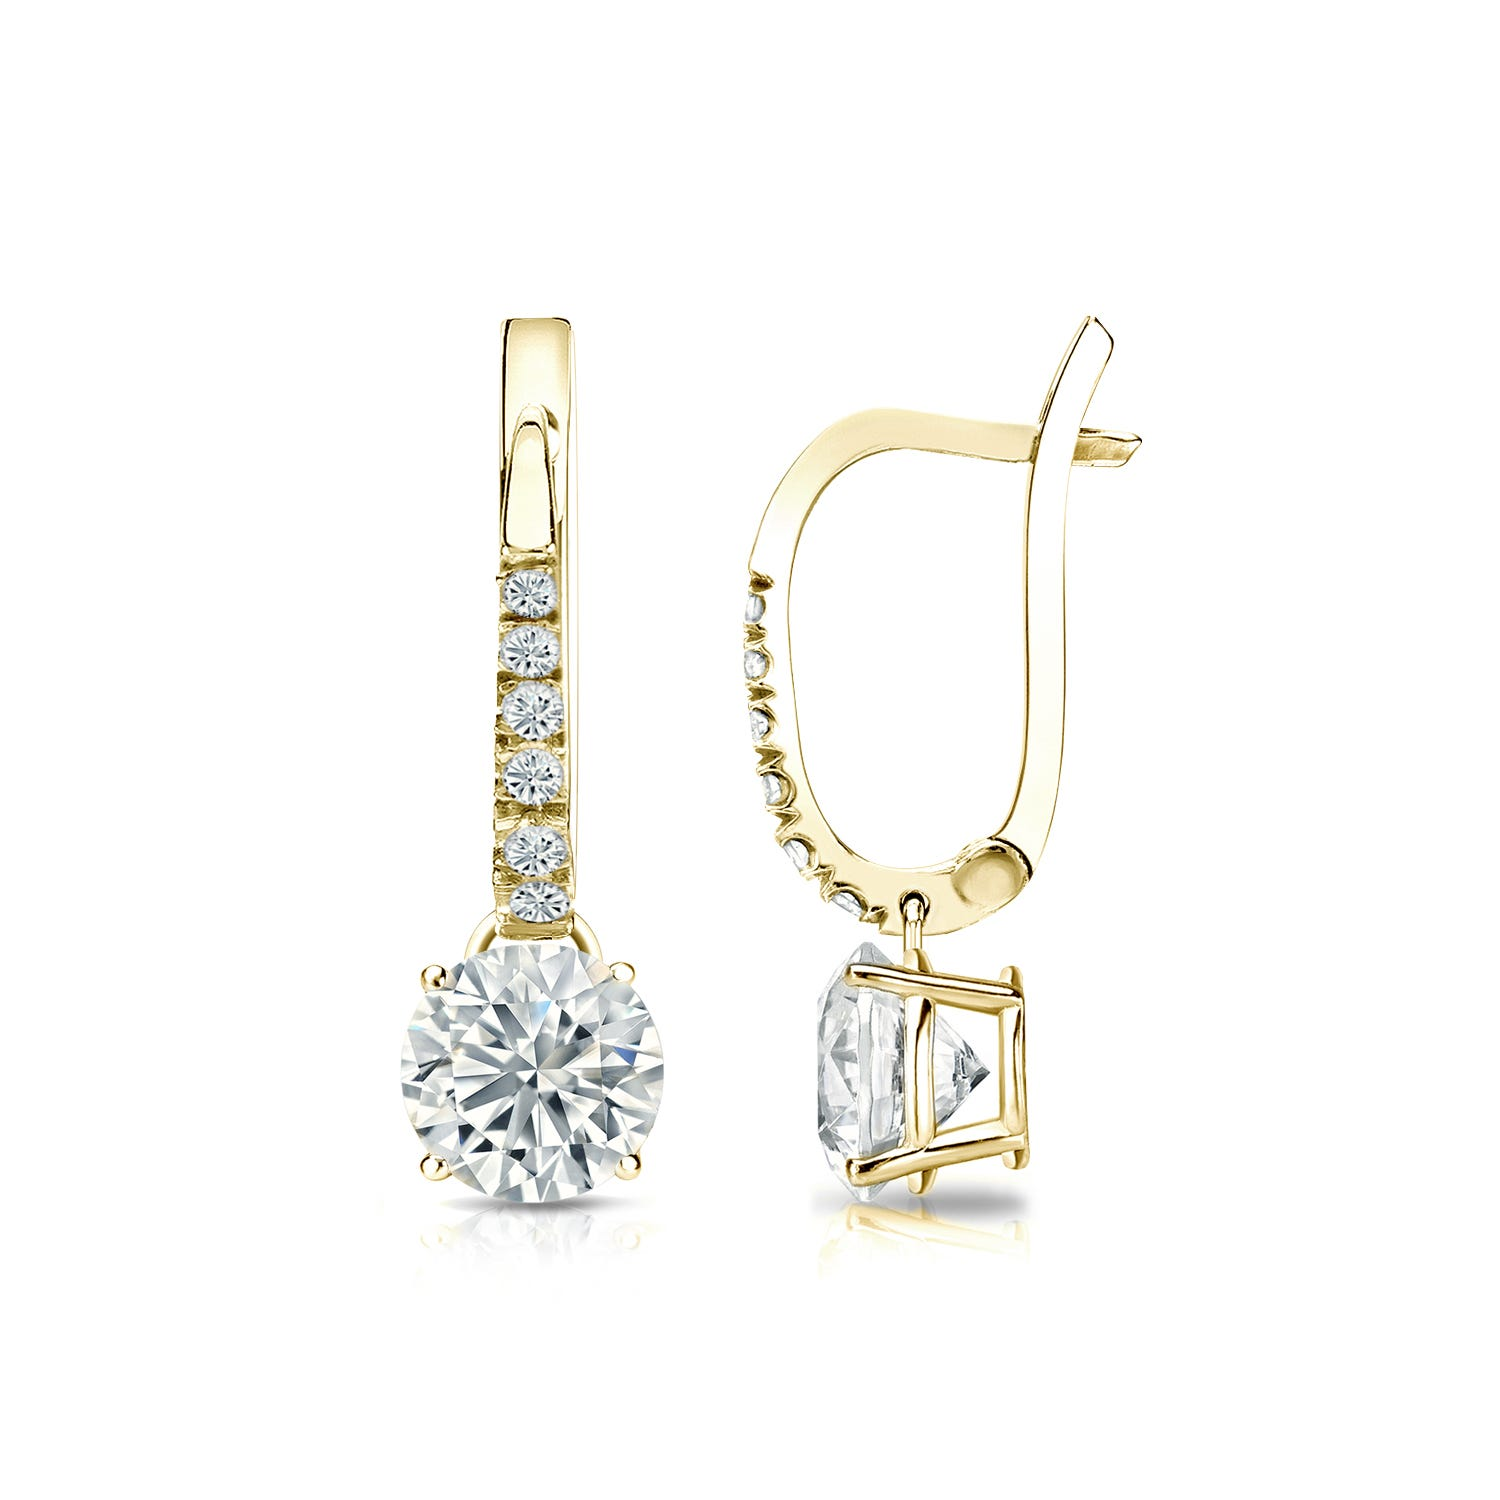 Diamond 1ctw. 4-Prong Round Drop Earrings in 18k Yellow Gold I2 Clarity